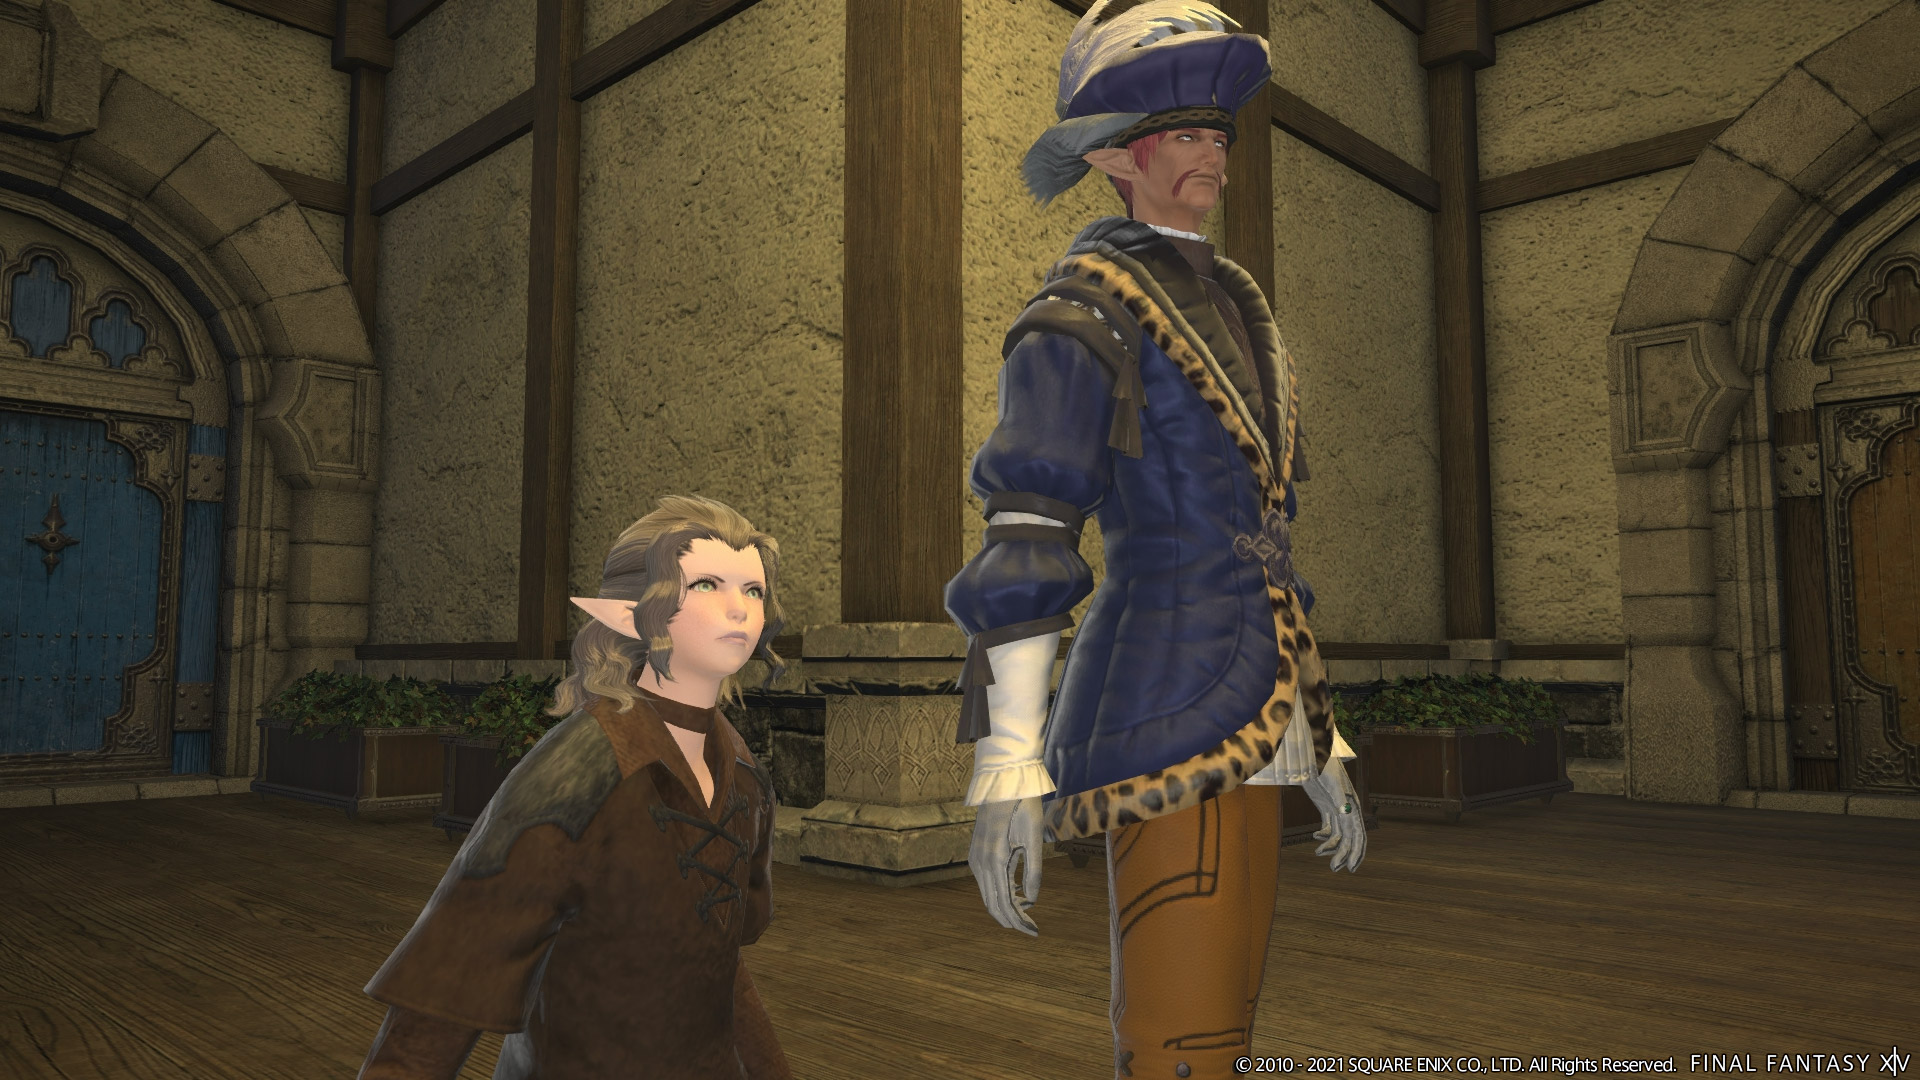 Count Charlemend and a young elezen woman stand in shock